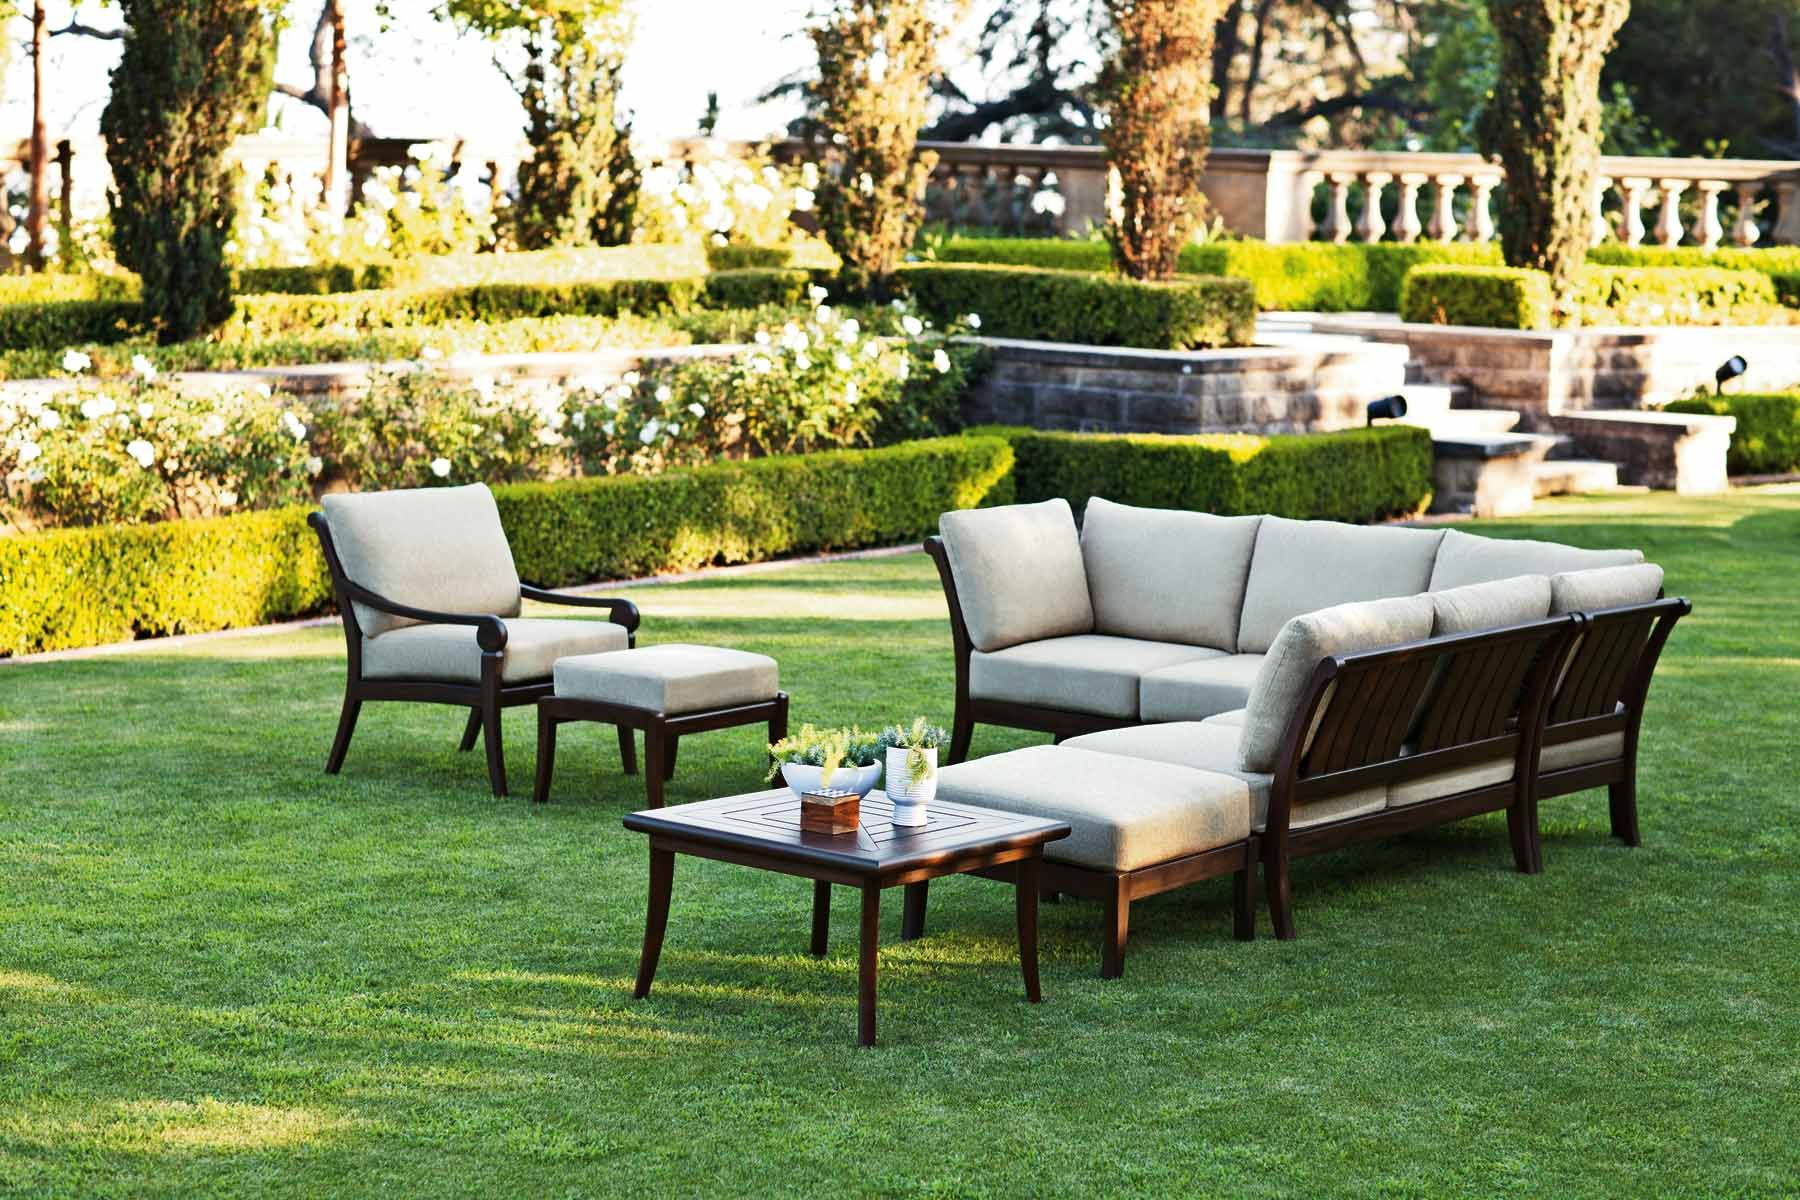 Outdoor Living Room This Outdoor Space Is Complete With A